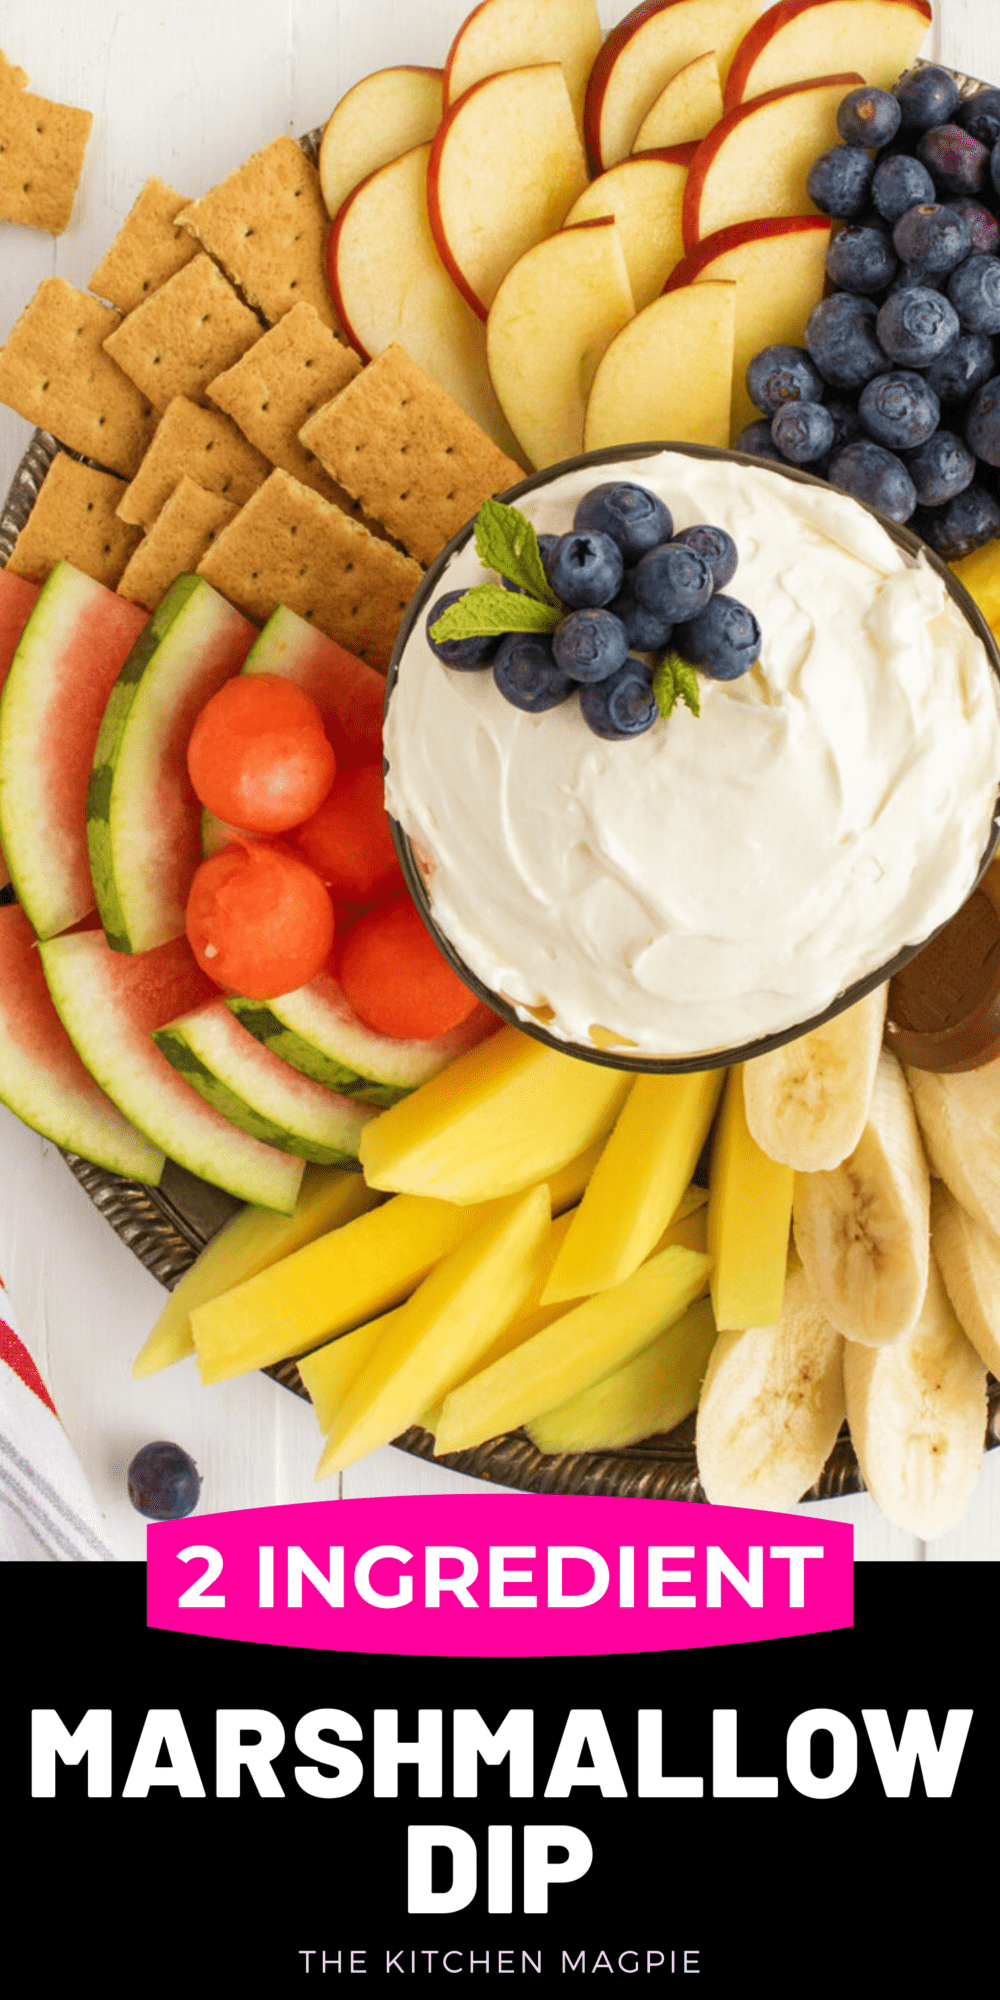 Classic cream cheese and marshmallow fruit dip that is only two ingredients! Serve with fruit and sweet crackers, Perfect for picnics, potlucks, parties and more!